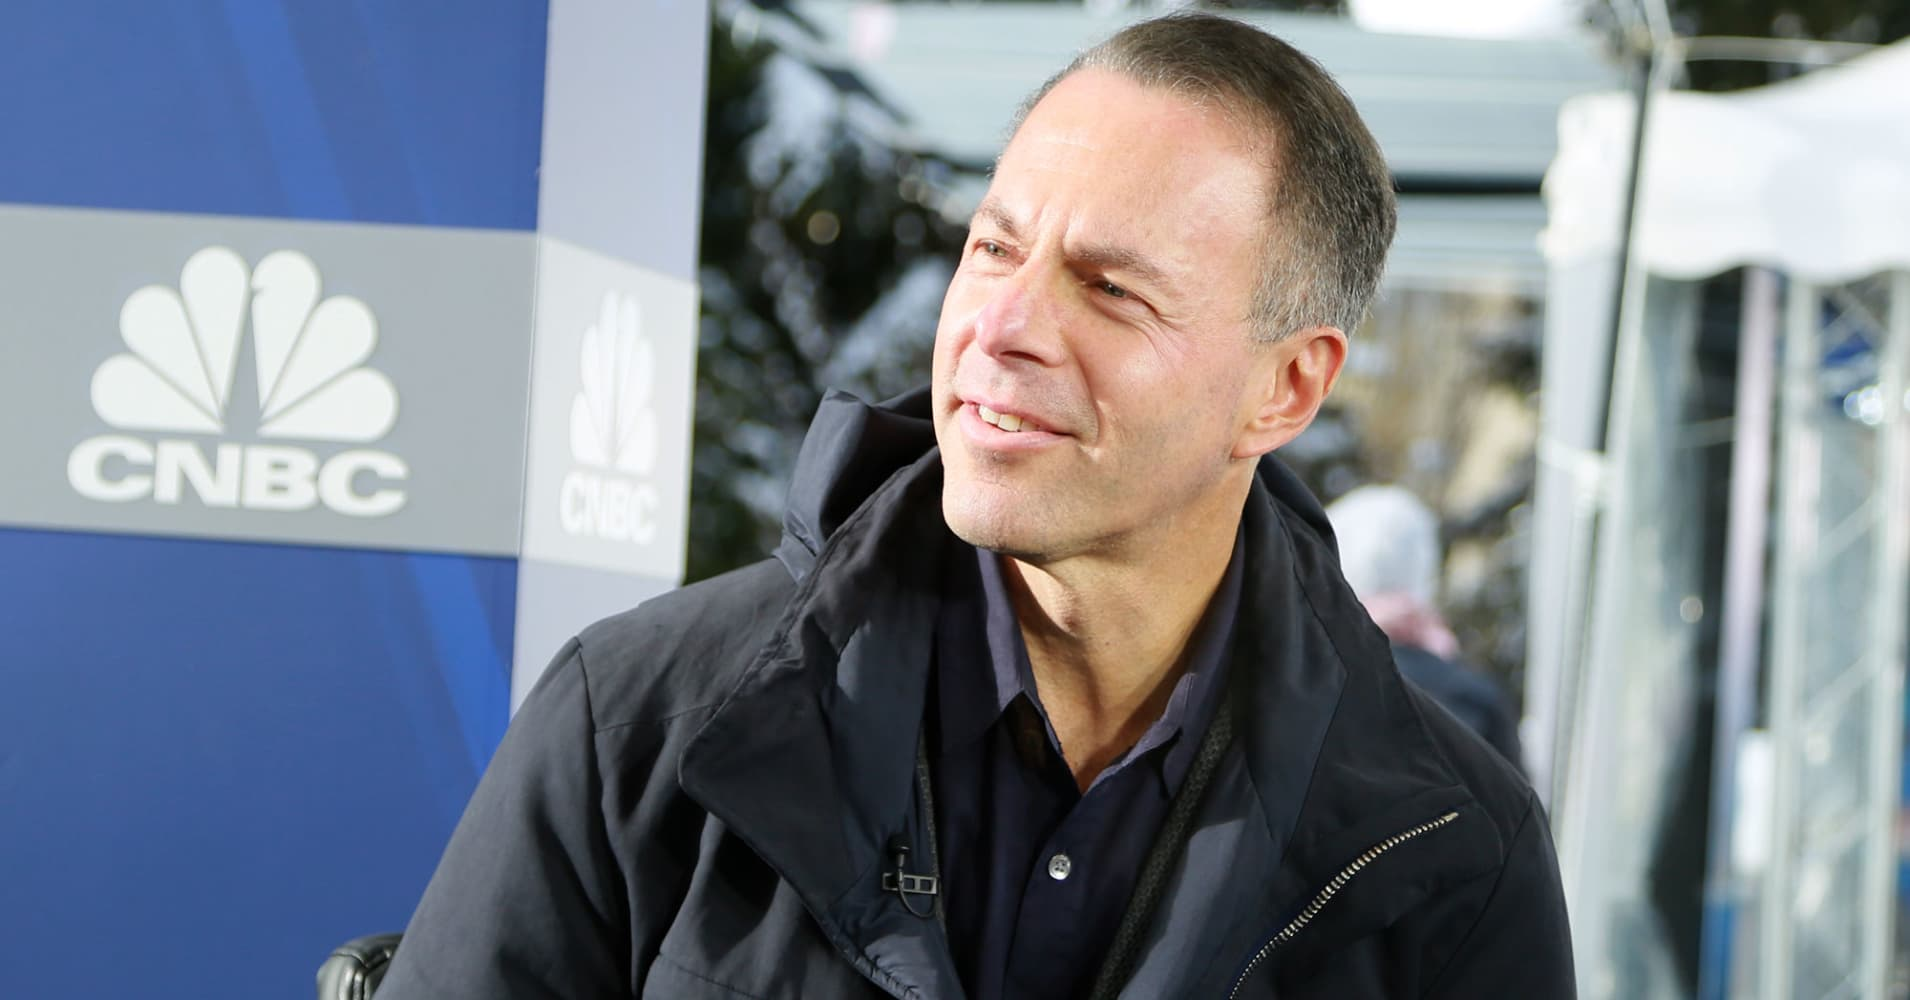 EBay CEO: Get used to shopping with your voice Blog - Proforma LBP